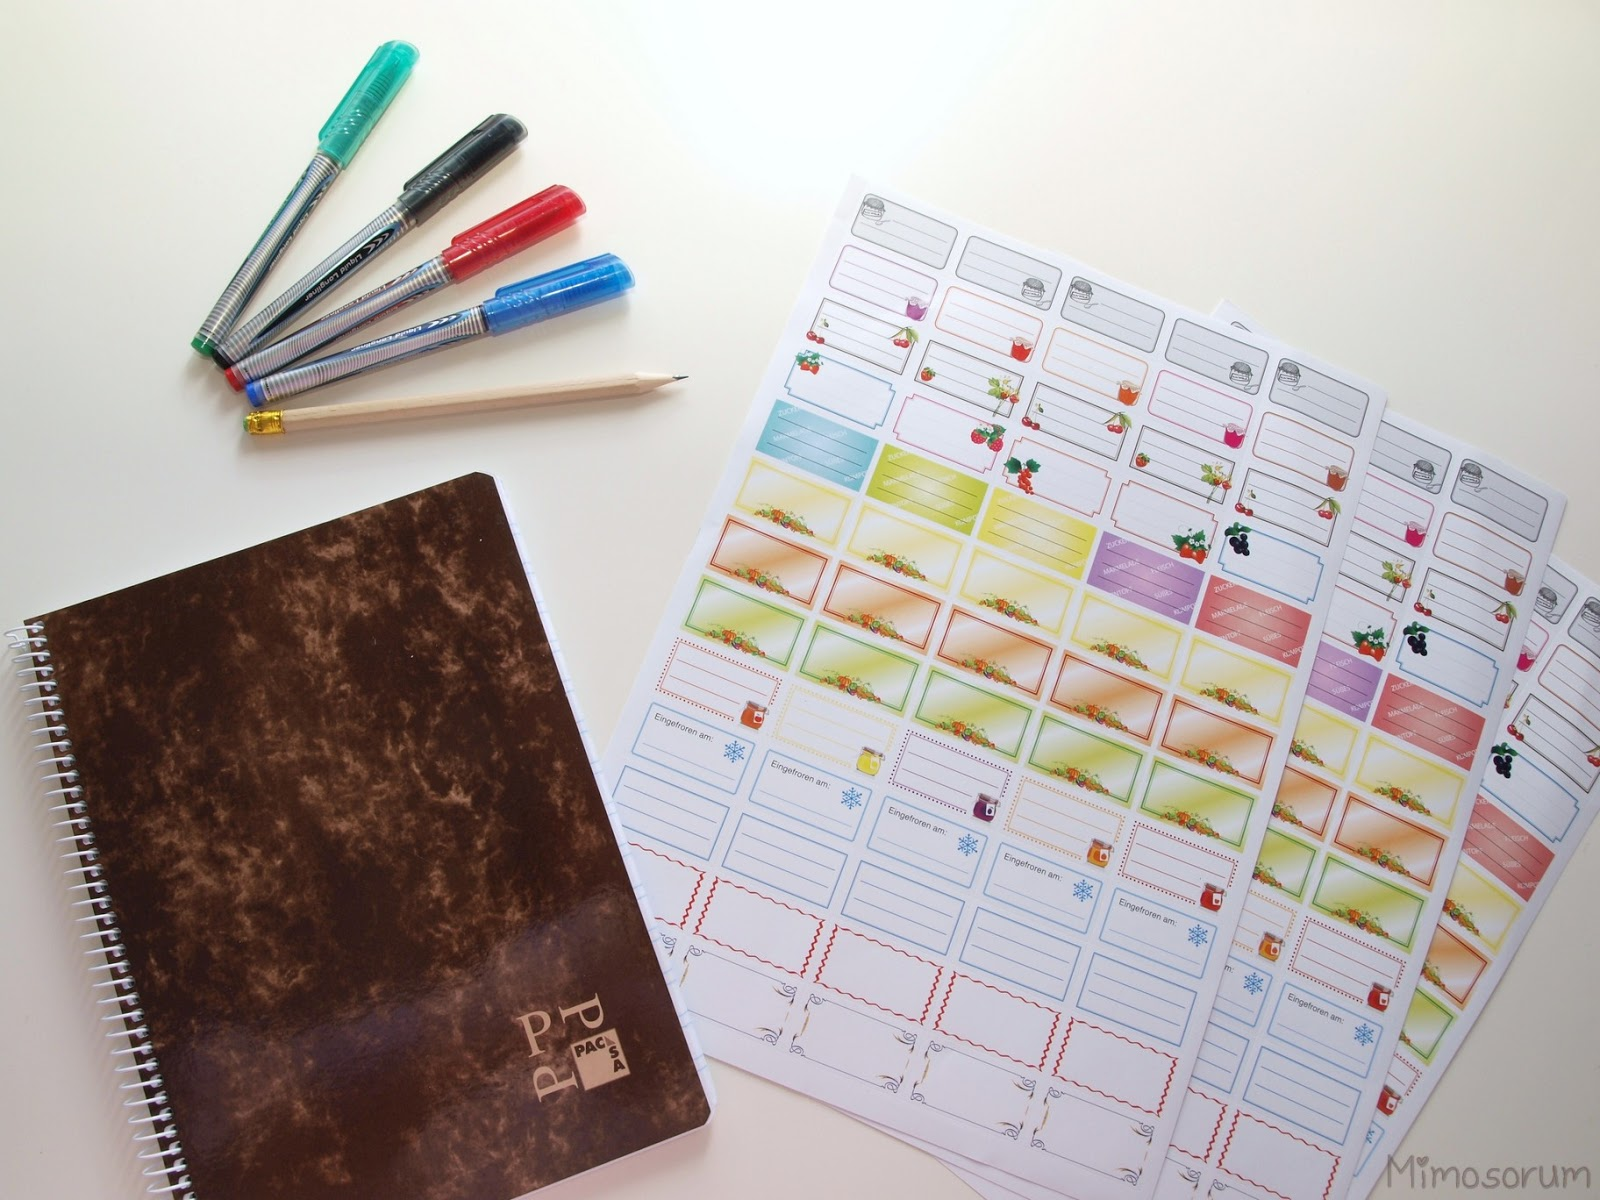 Notebooks for School. Cuaderno para el colegio. Mimosorum